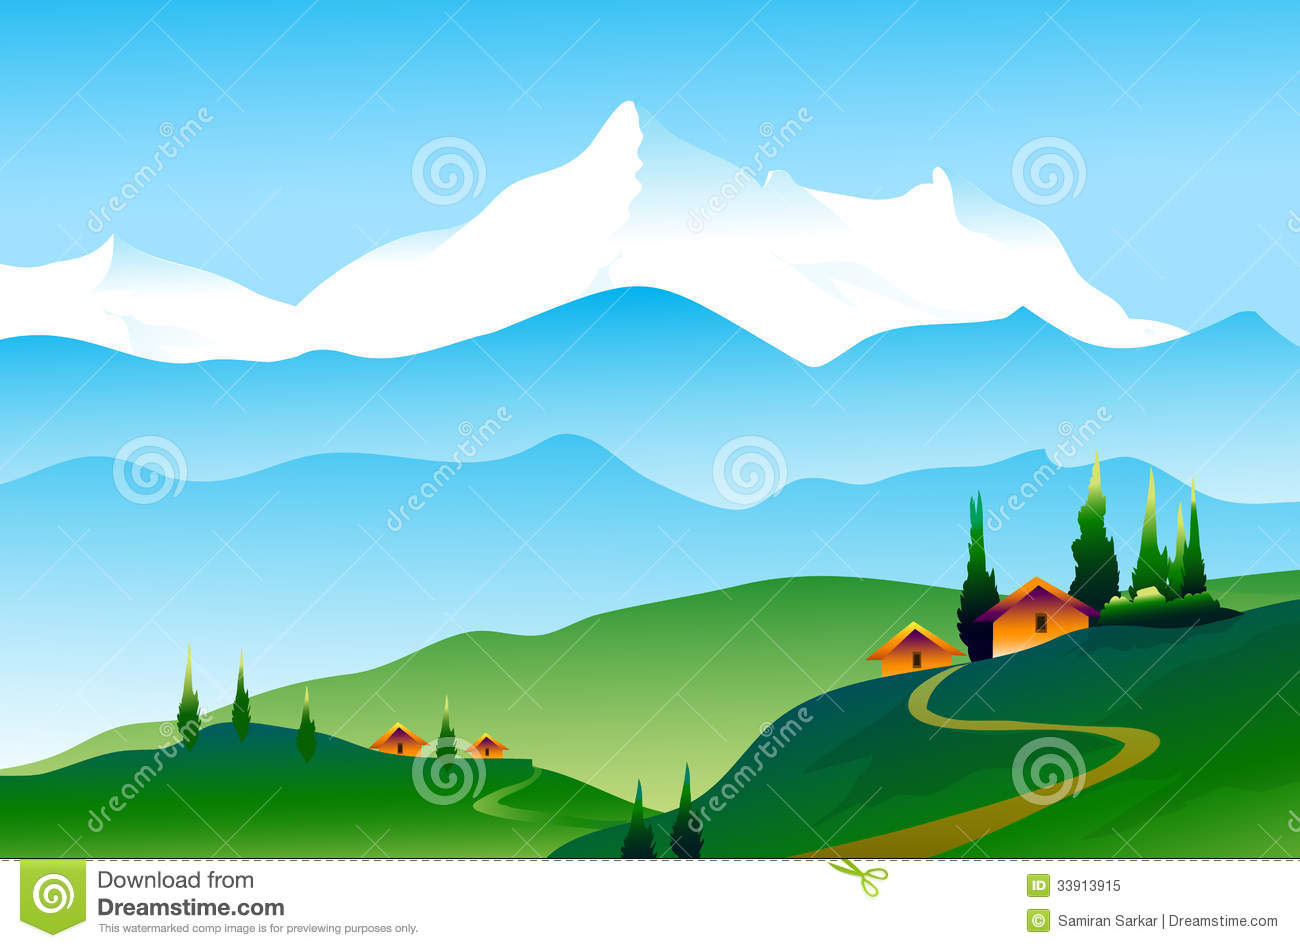 Himalayas clipart #15, Download drawings